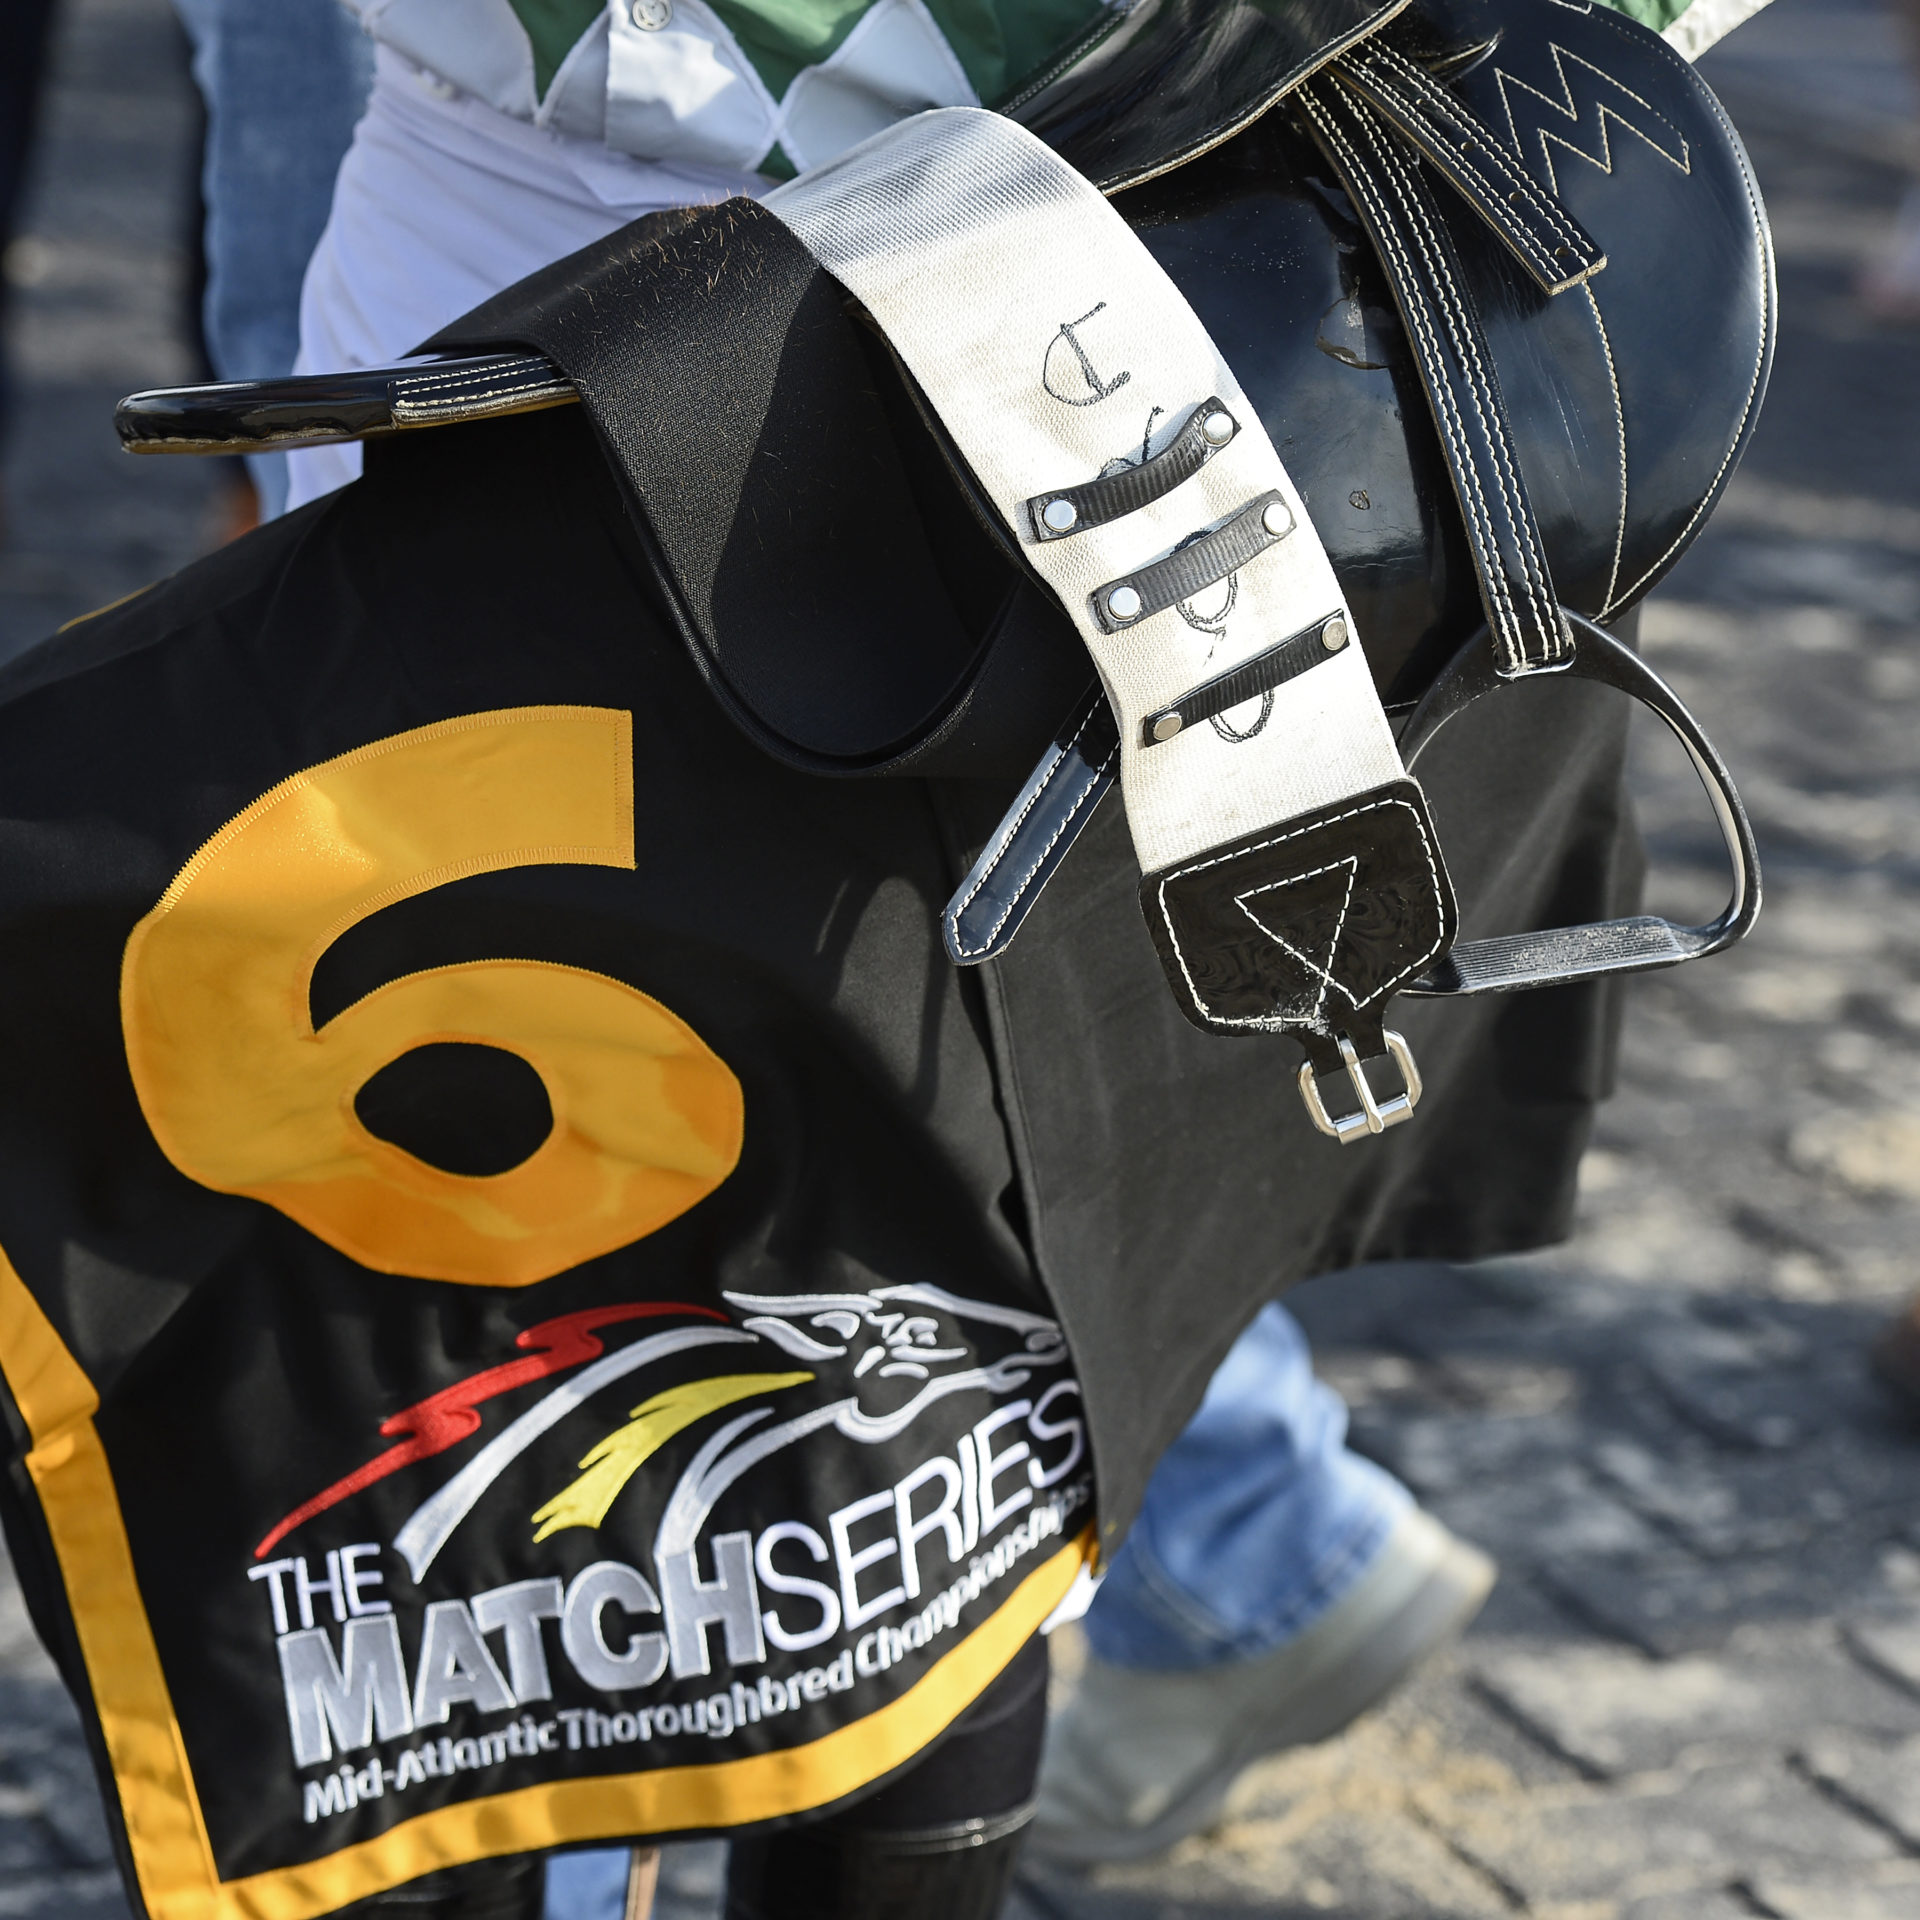 MATCH Series pays off for connections of Jessica Krupnick, other horsemen